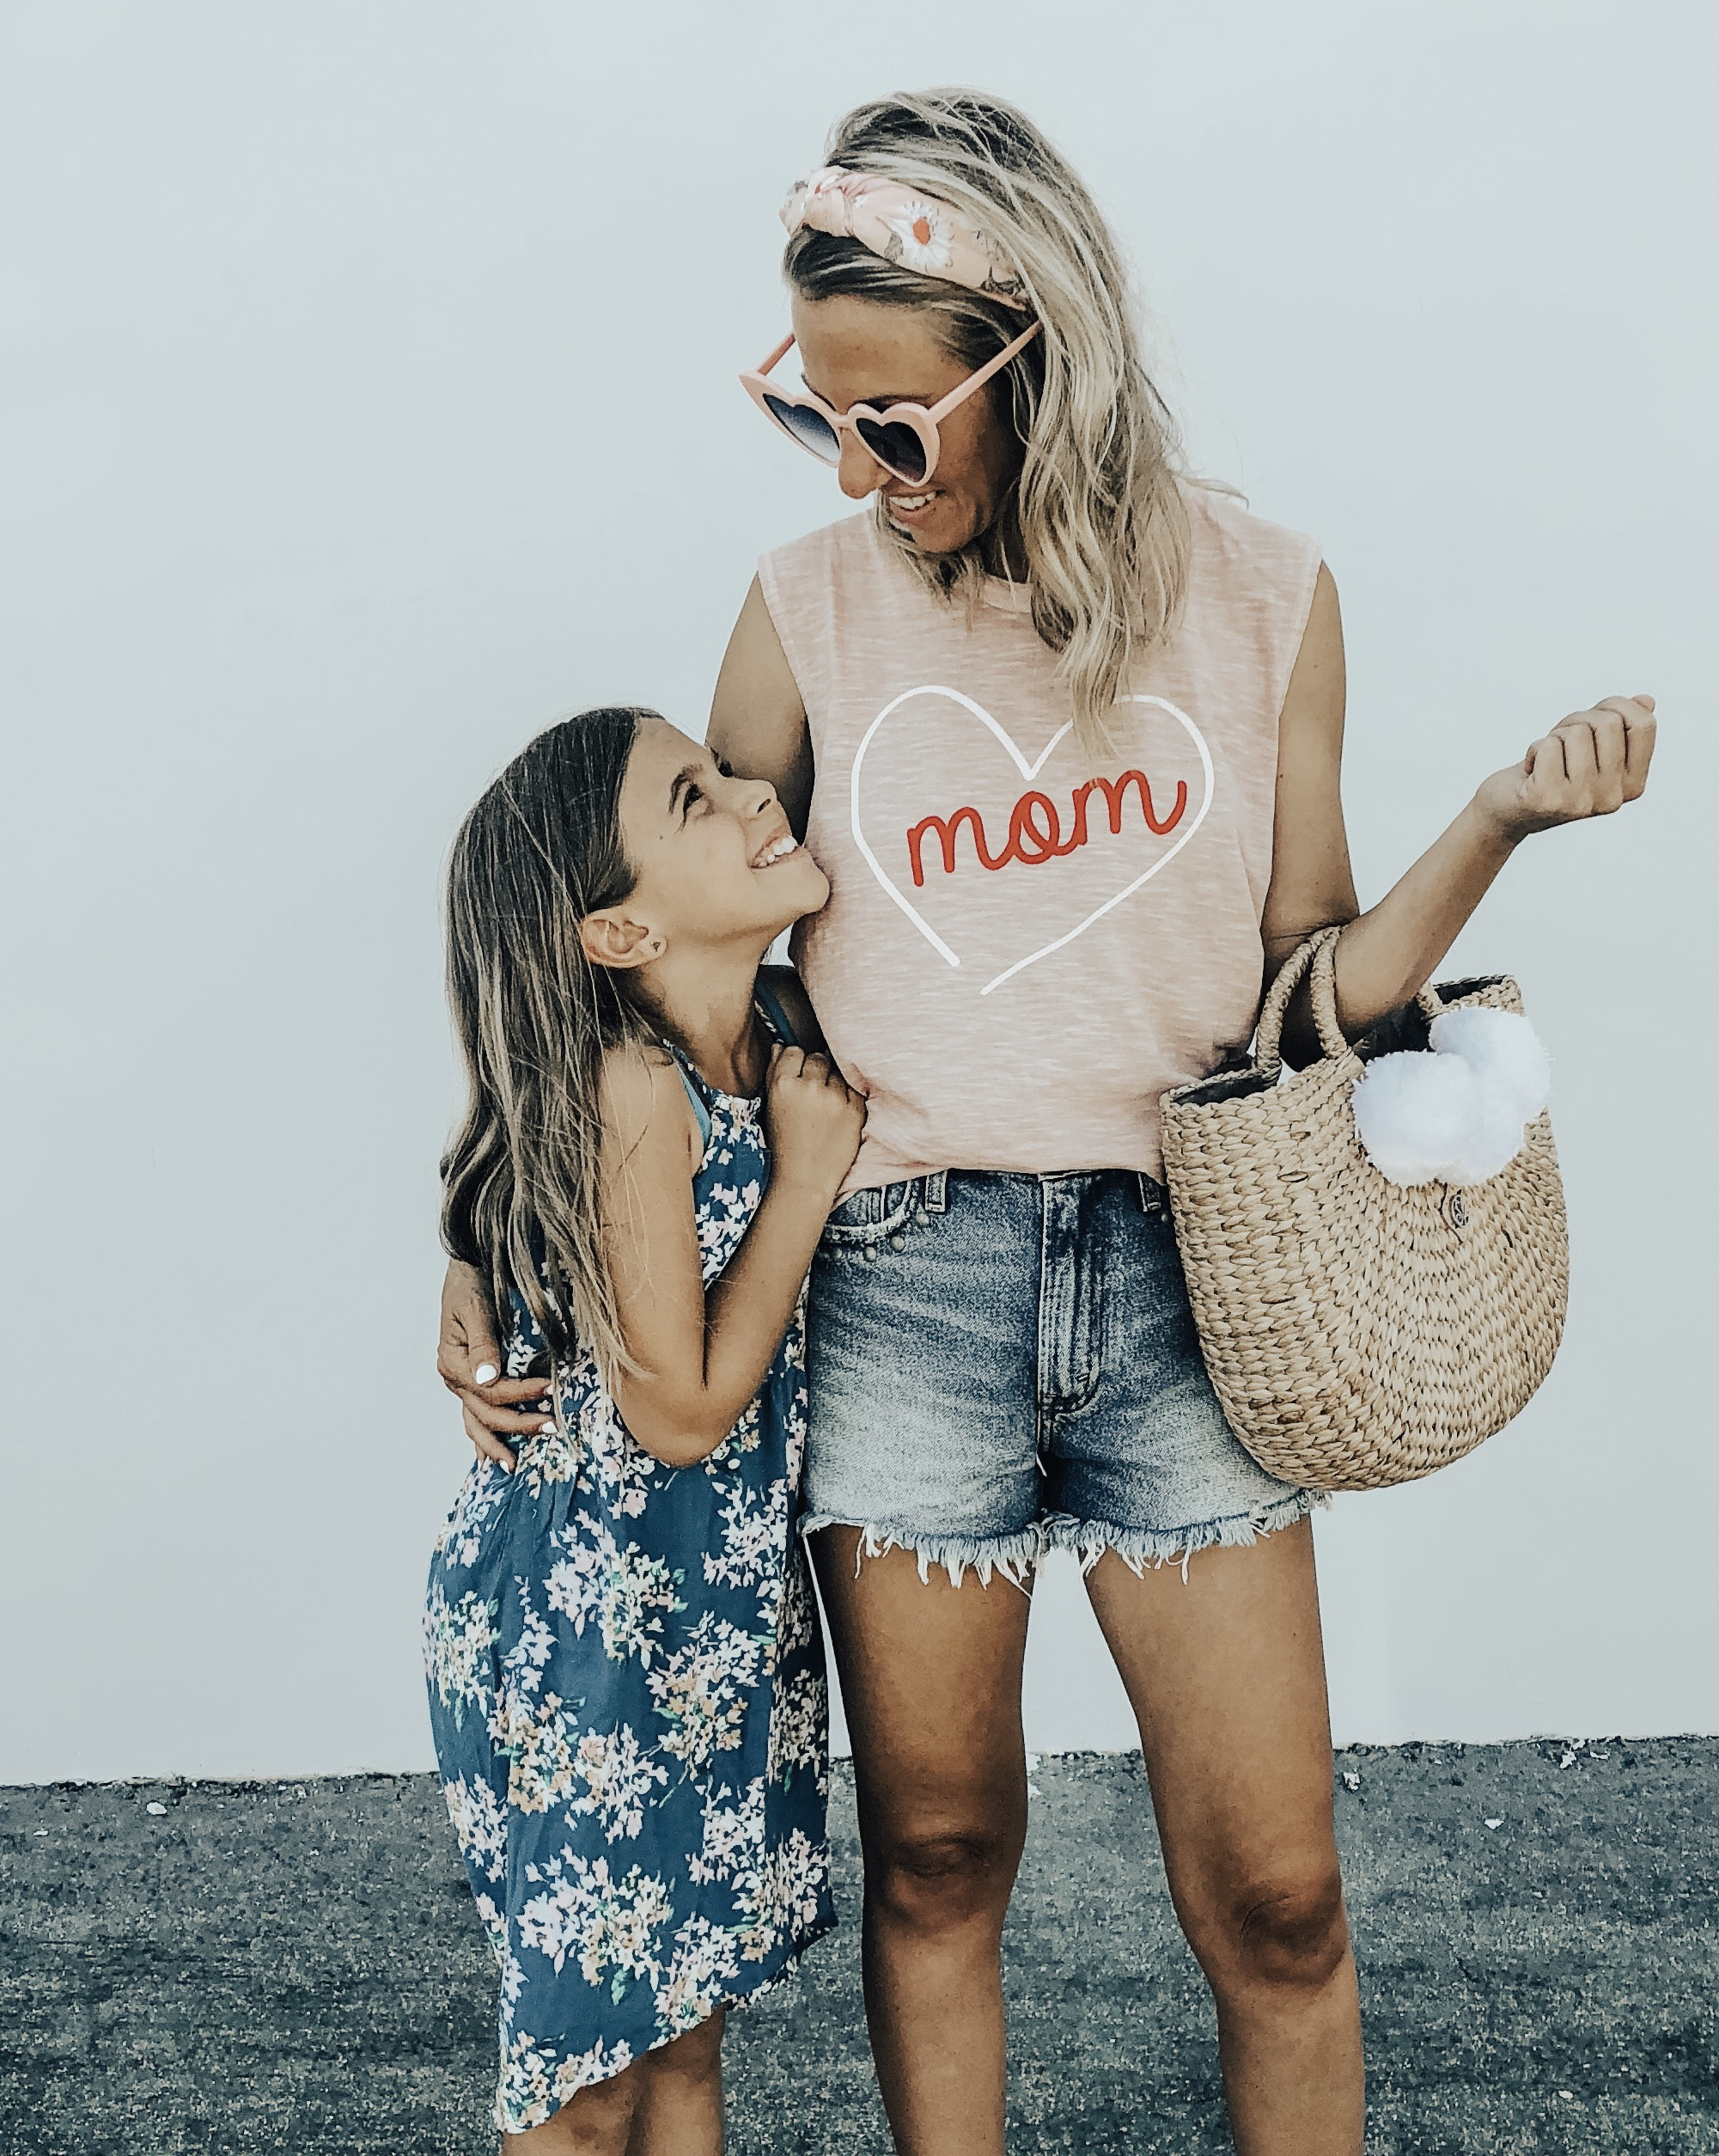 LAST MINUTE MOTHER'S DAY GIFTS- Jaclyn De Leon Style + Are you still looking for last minute Mother's Day gifts? I've got you covered with the perfect gift guide with everything Amazon Prime or Target 2 day shipping!